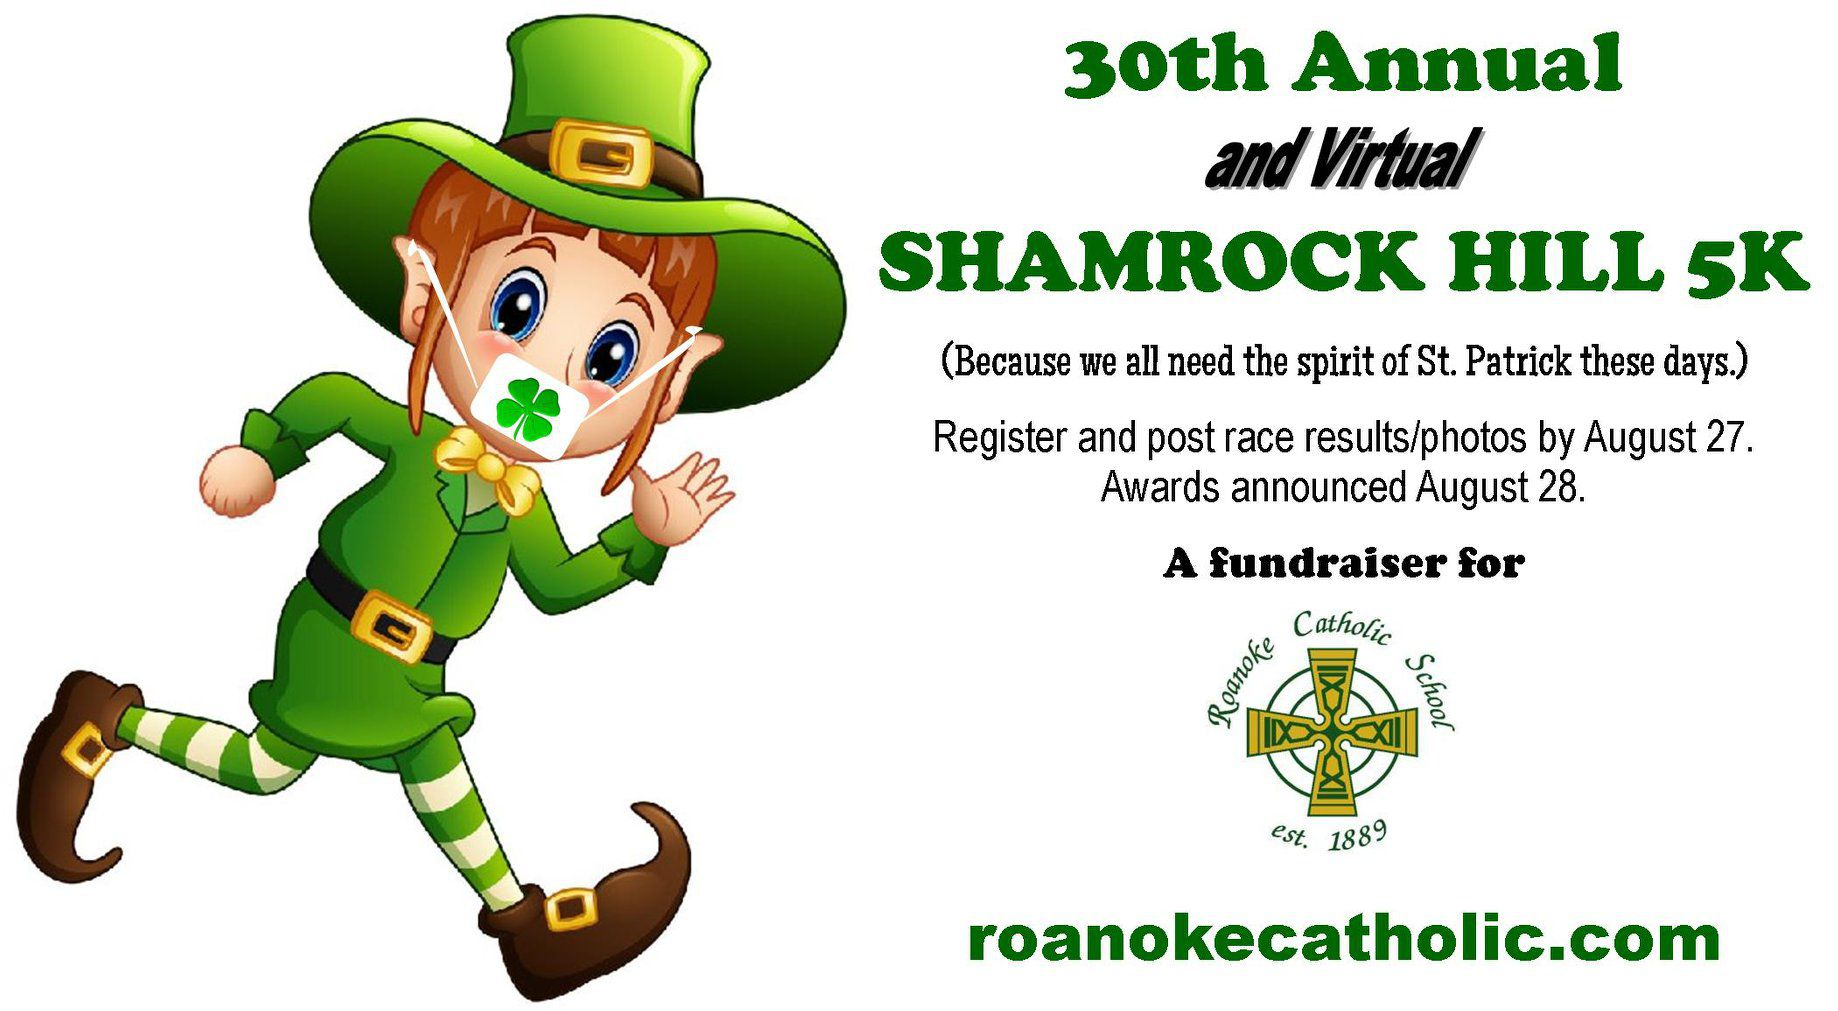 St. Patrick's Day in August: After postponed twice, Shamrock Hill 5K goes virtual